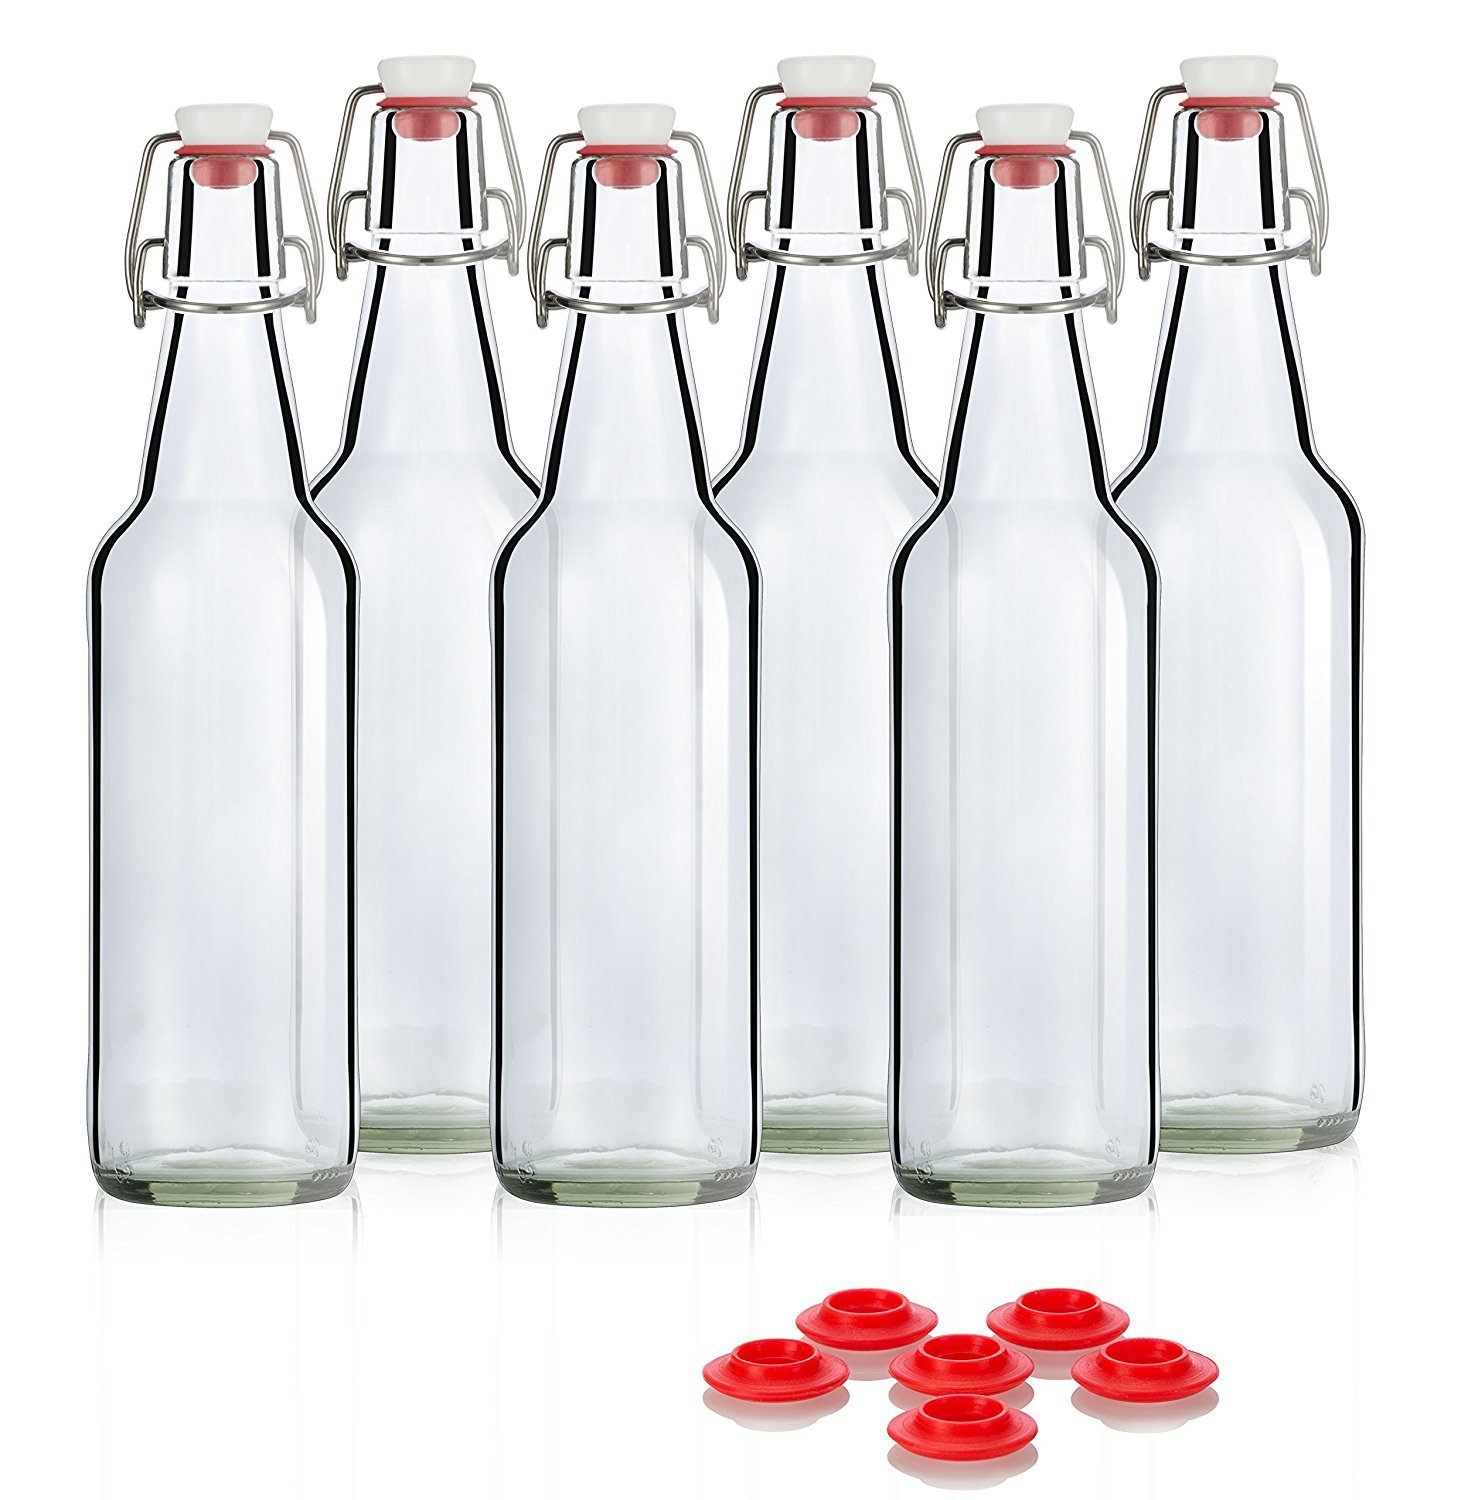 Swing Top Glass Bottles CERAMIC TOPS - Flip Top Bottles For Kombucha, Kefir, Beer - Clear Color 16oz Size - Set of 6 Brewing Bottles - Leak Proof With Easy Caps - Bonus Gaskets Quick Cleaning Design Otis Classic